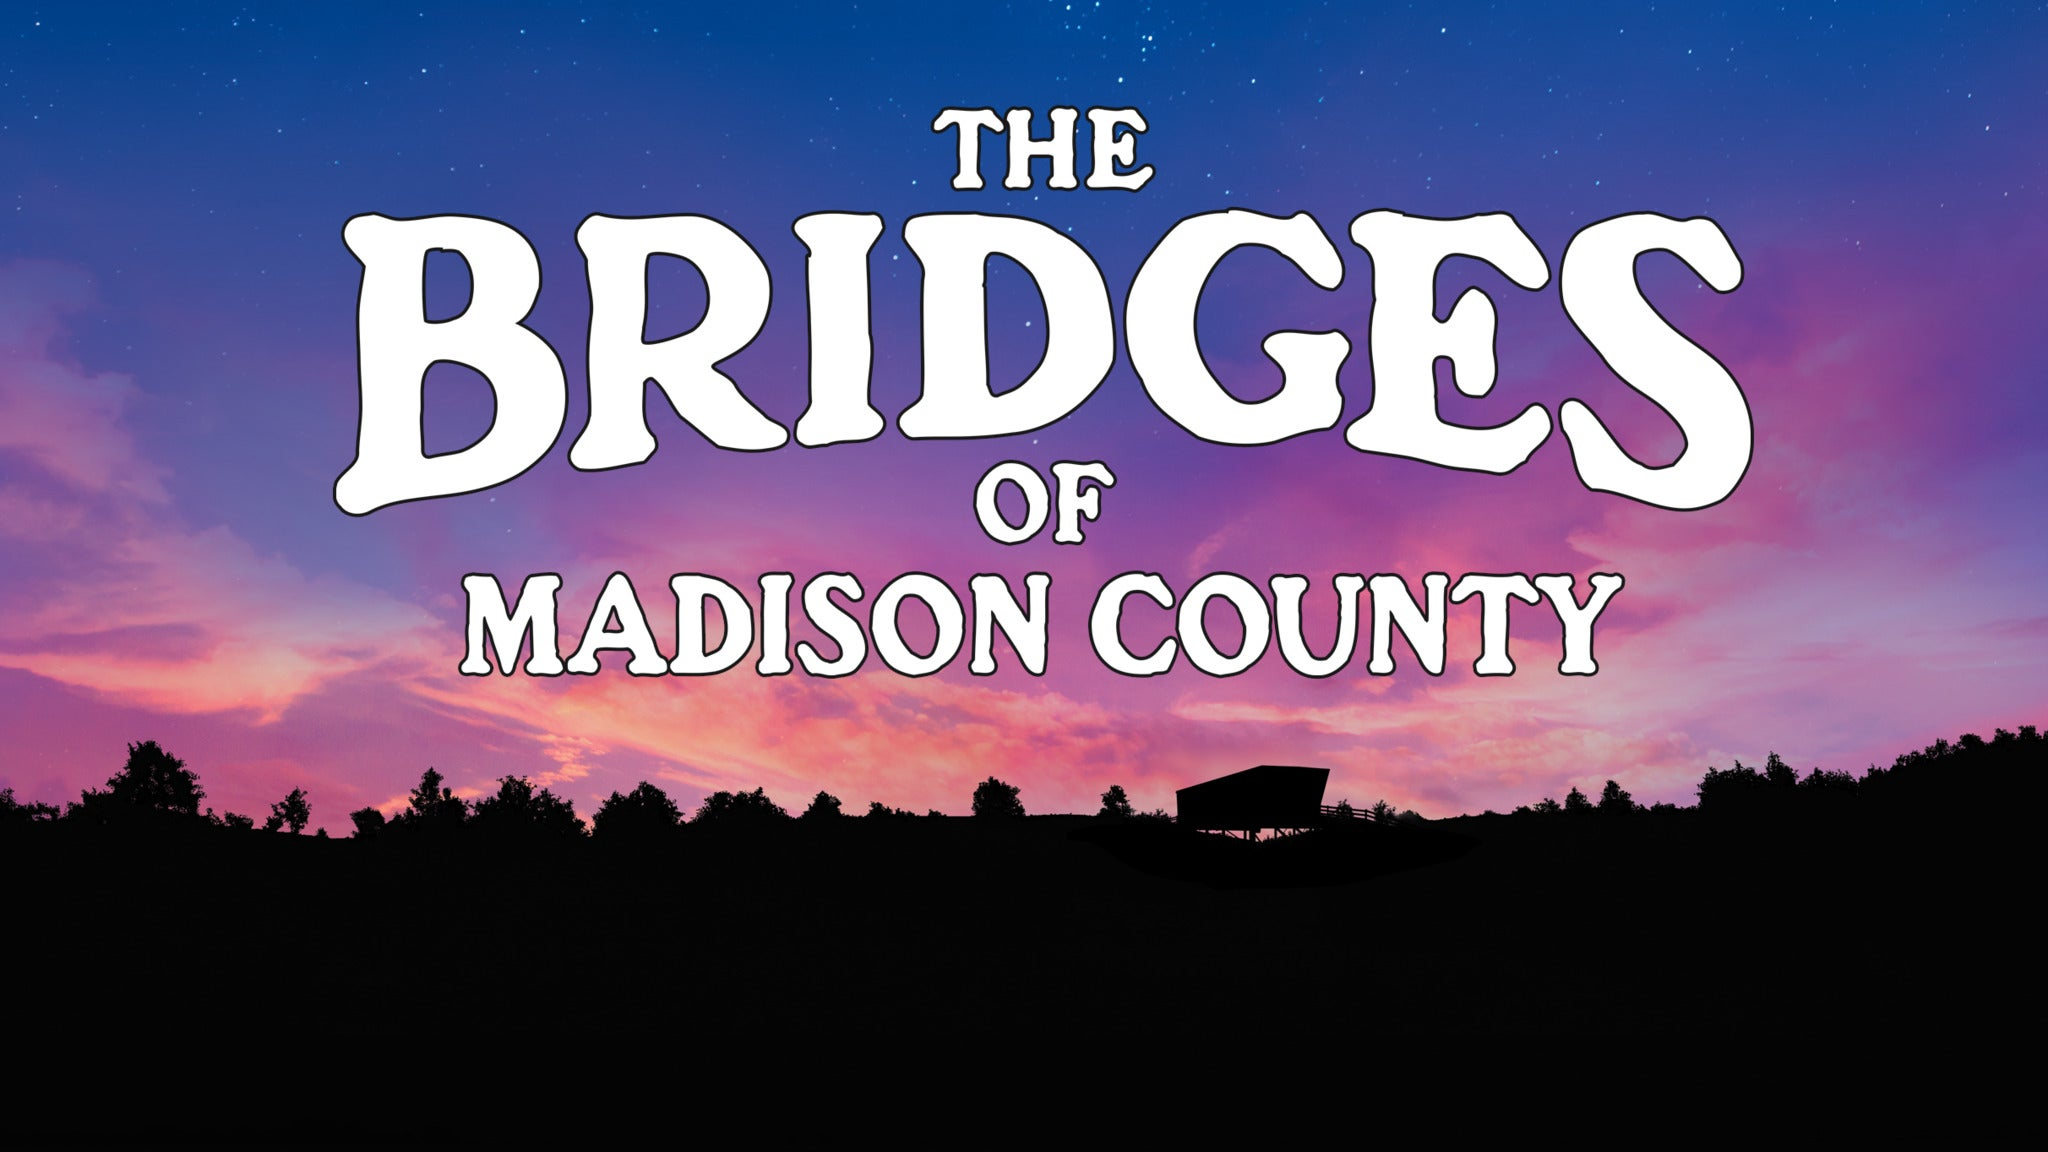 Marriott Theatre Presents: THE BRIDGES OF MADISON COUNTY